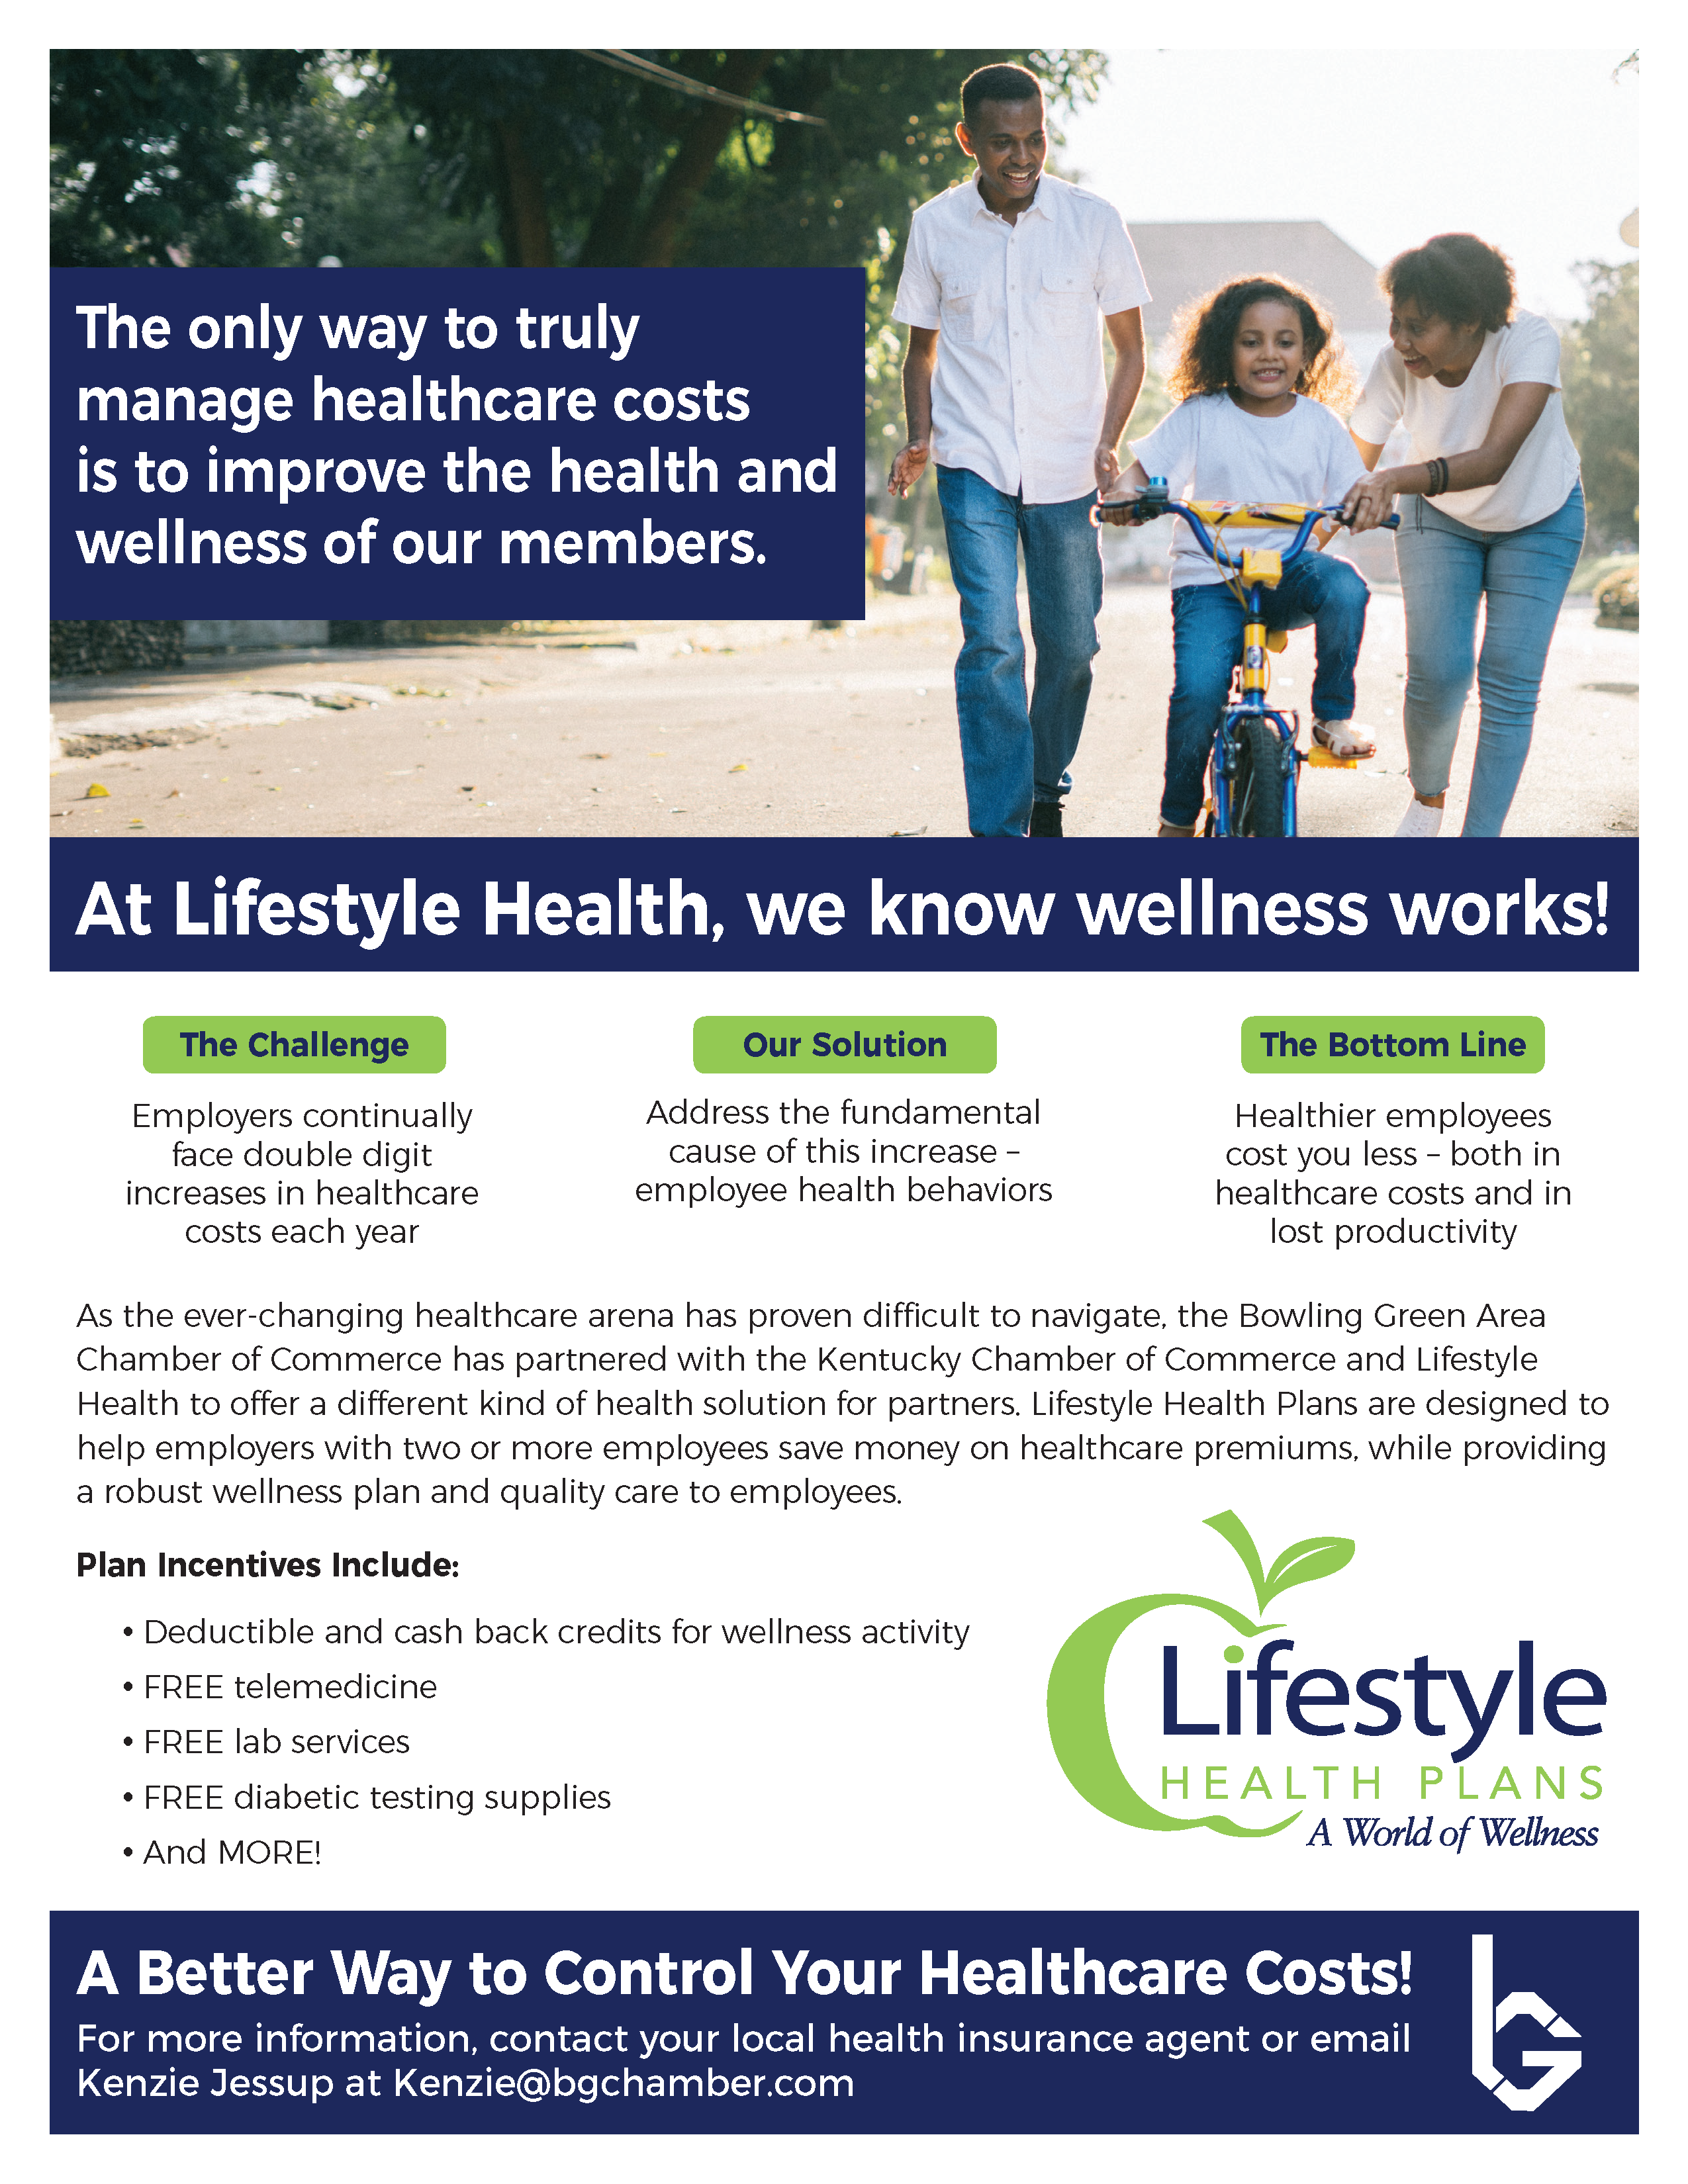 Bowling Green Area Chamber of Commerce - Health Care Plans